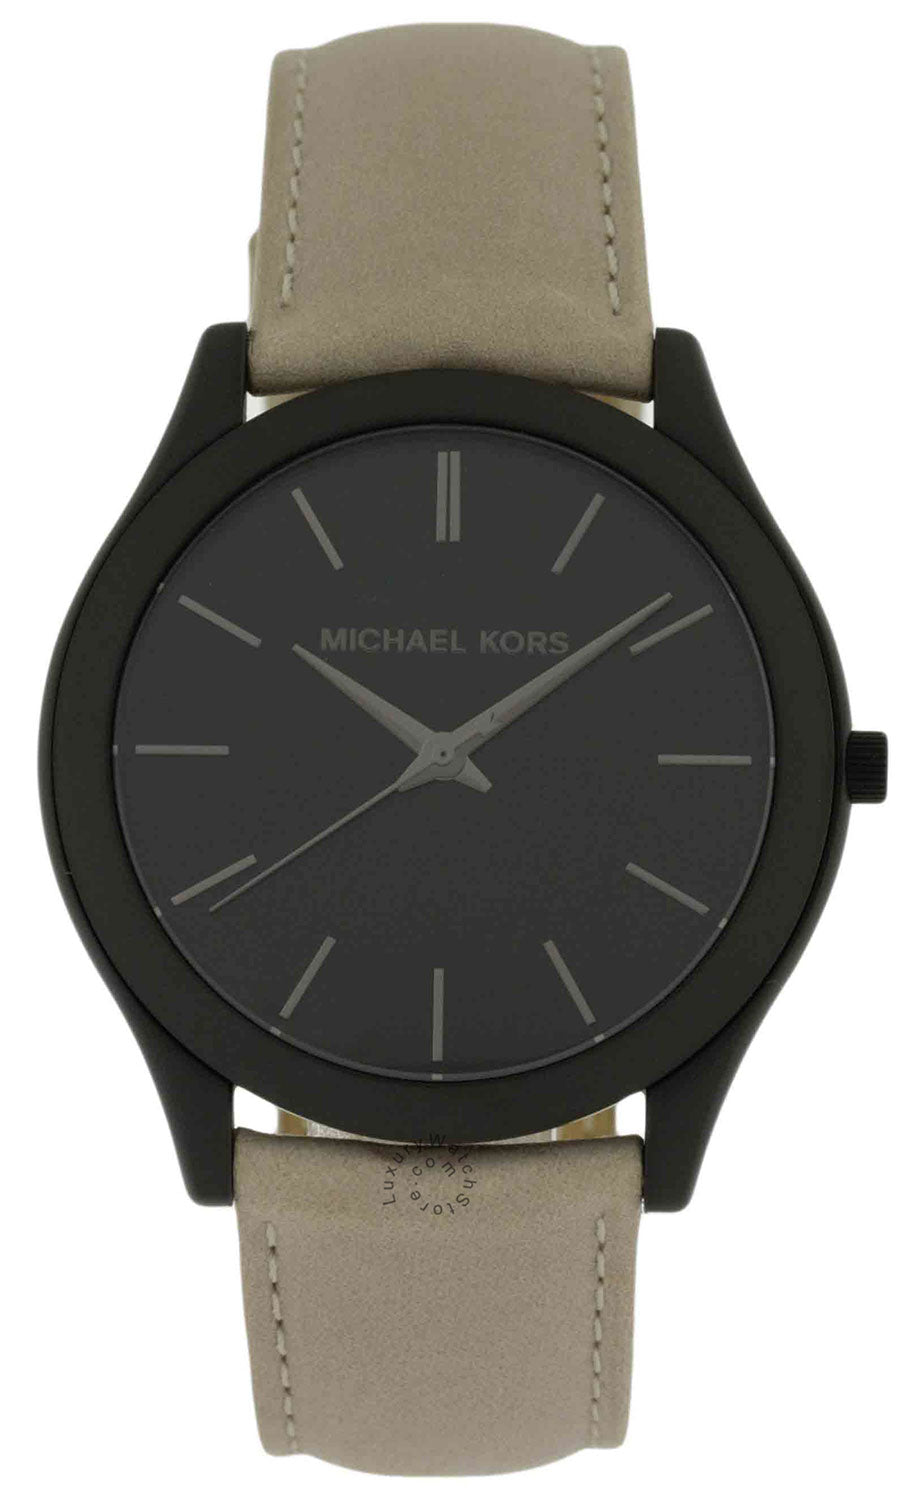 Michael Kors Slim Runway Black Dial Beige Leather SS Men Watch MK8510